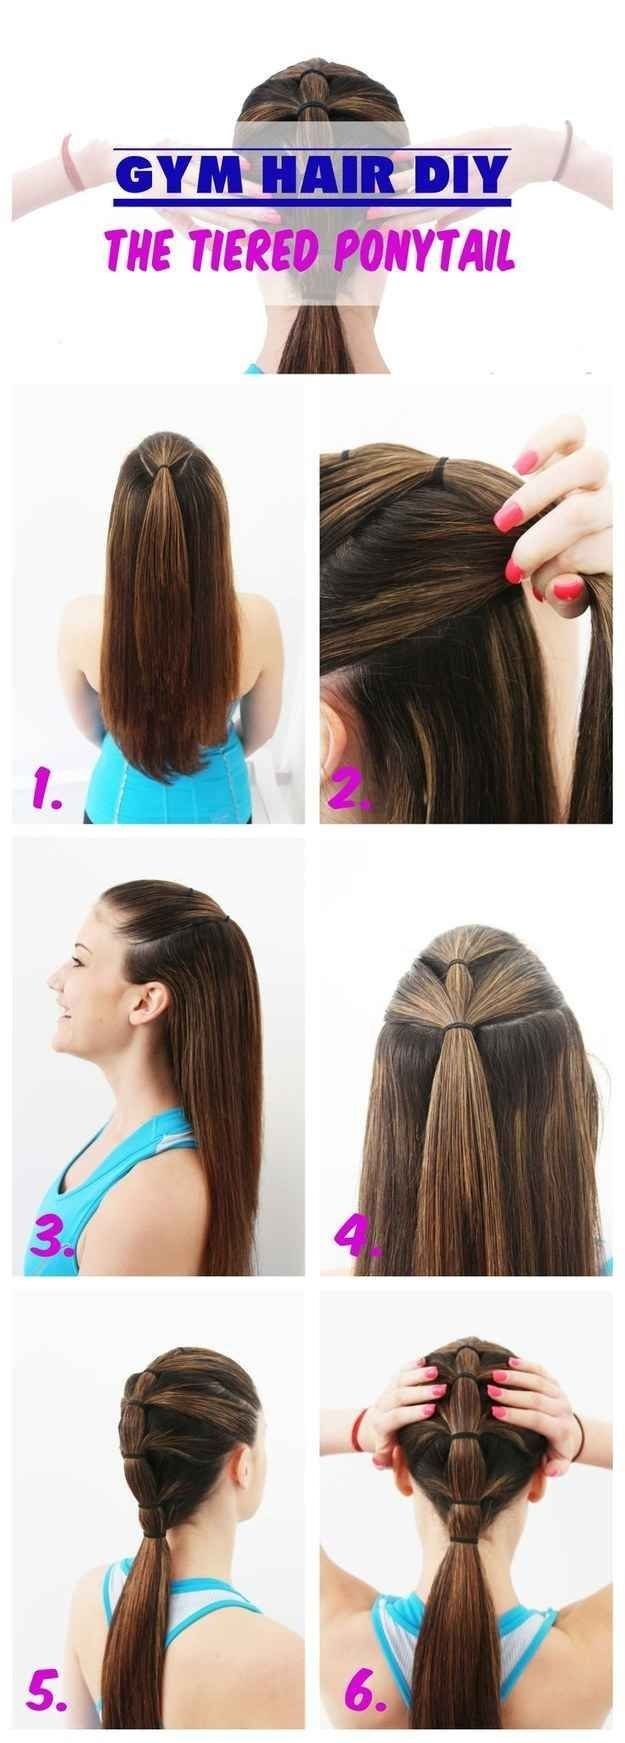 A tiered ponytail is the most secure way to pull your hair back while exercising.